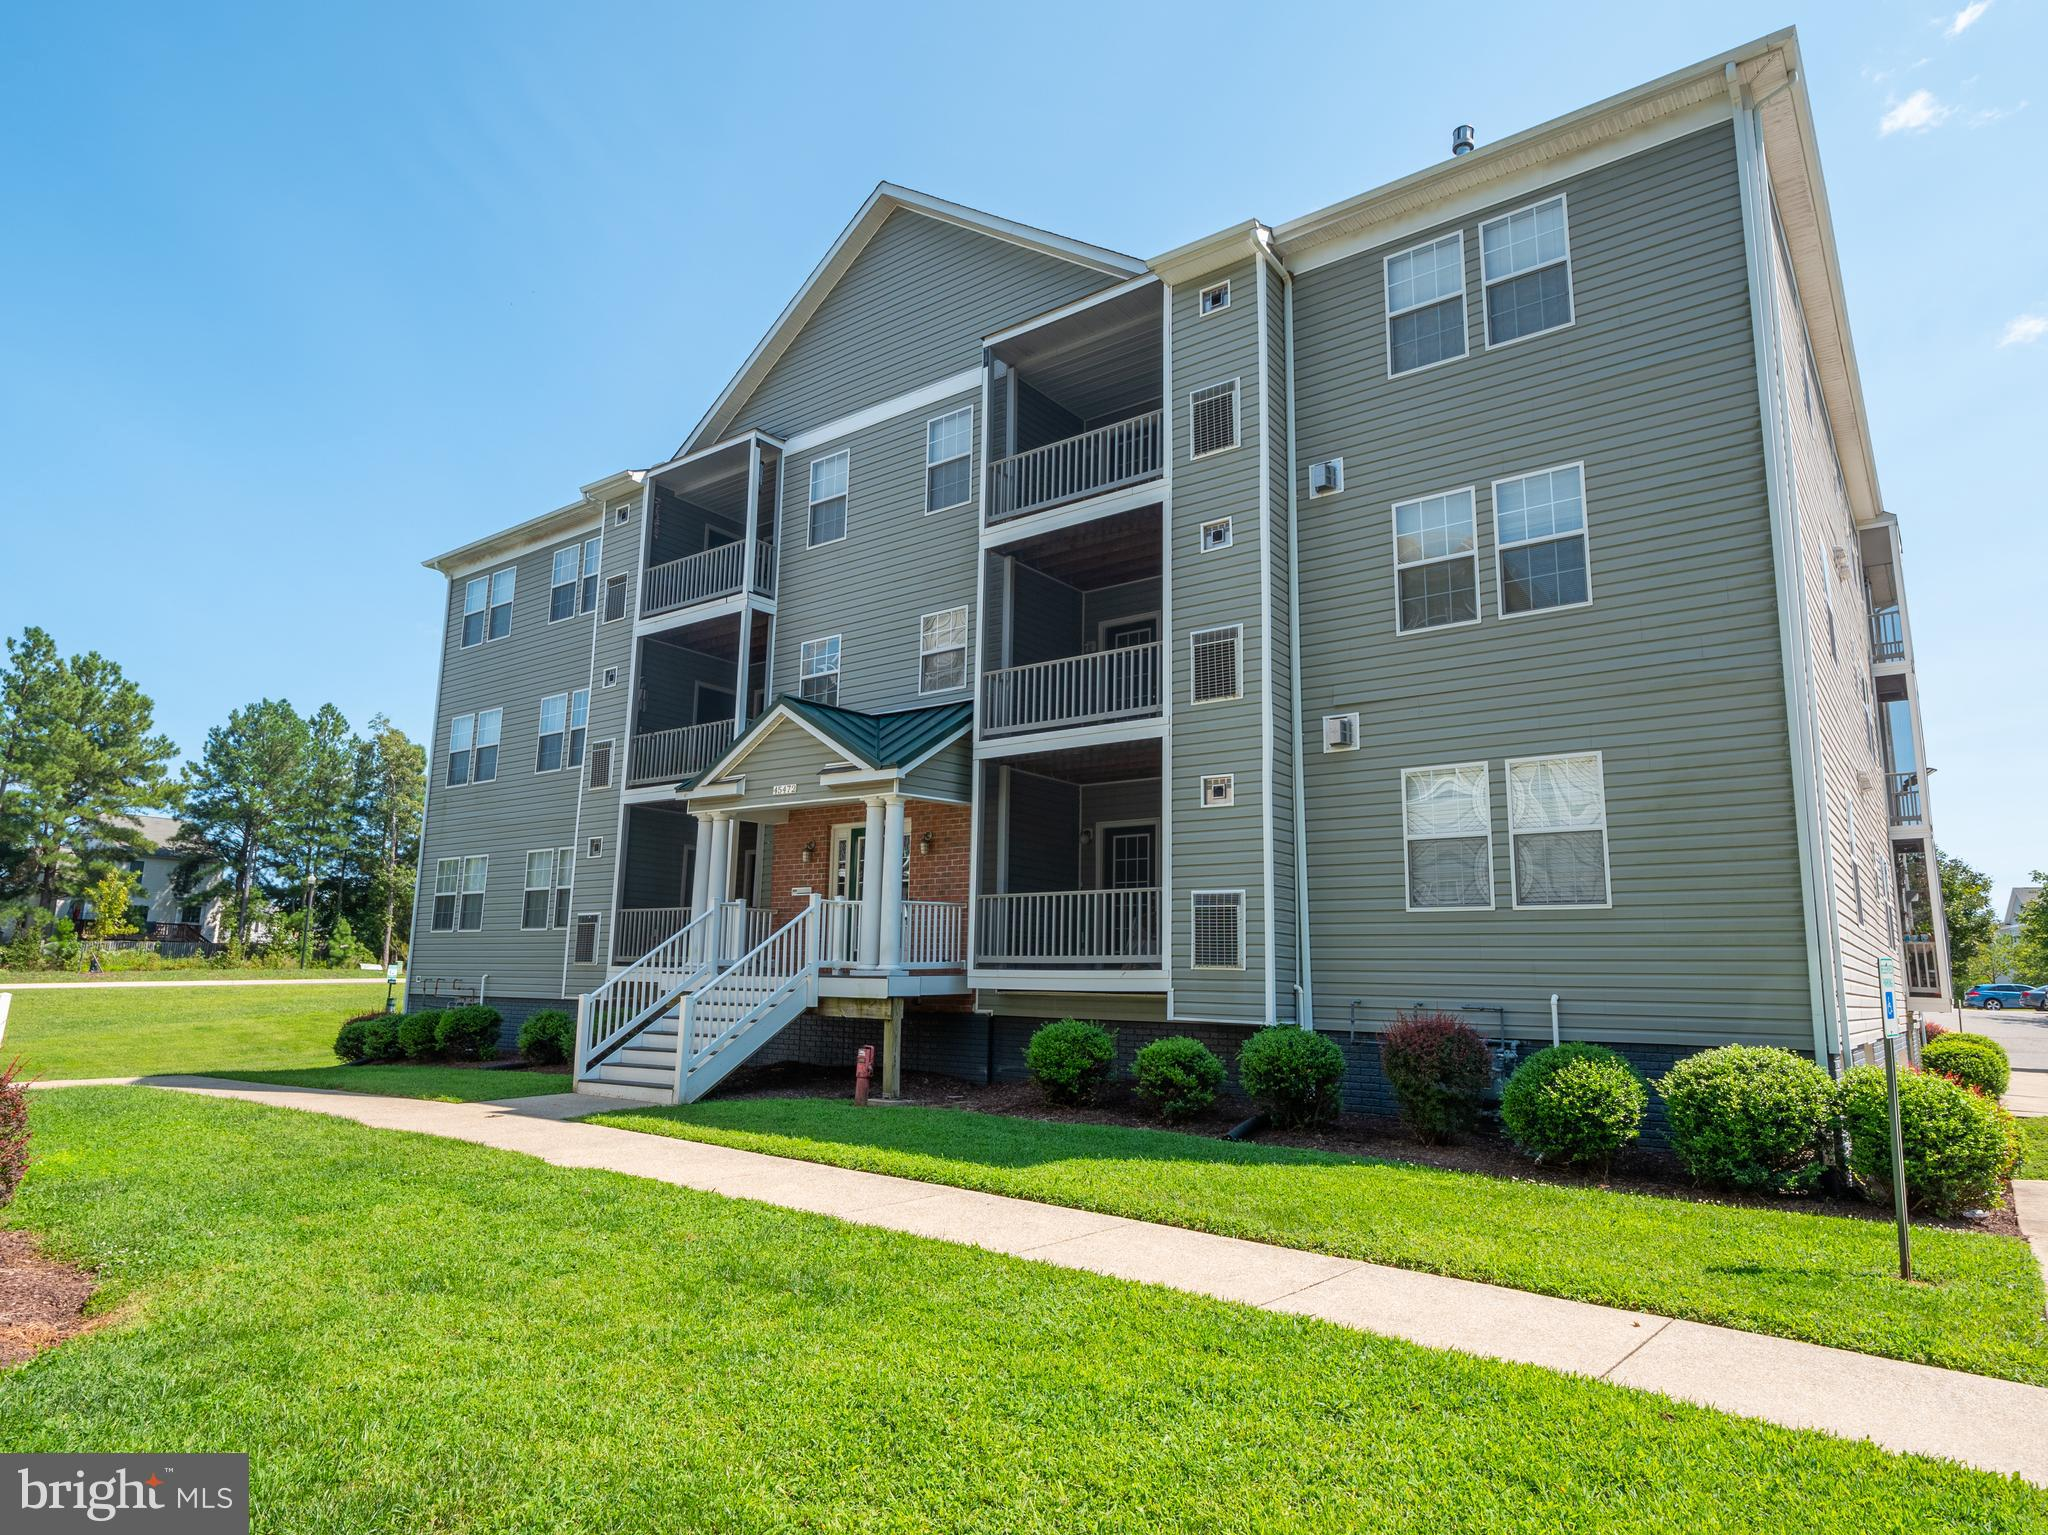 Beautiful 1 Level Condo with 2 Bedrooms, 2 Full Bathrooms, and over 1,100 square feet of living spac